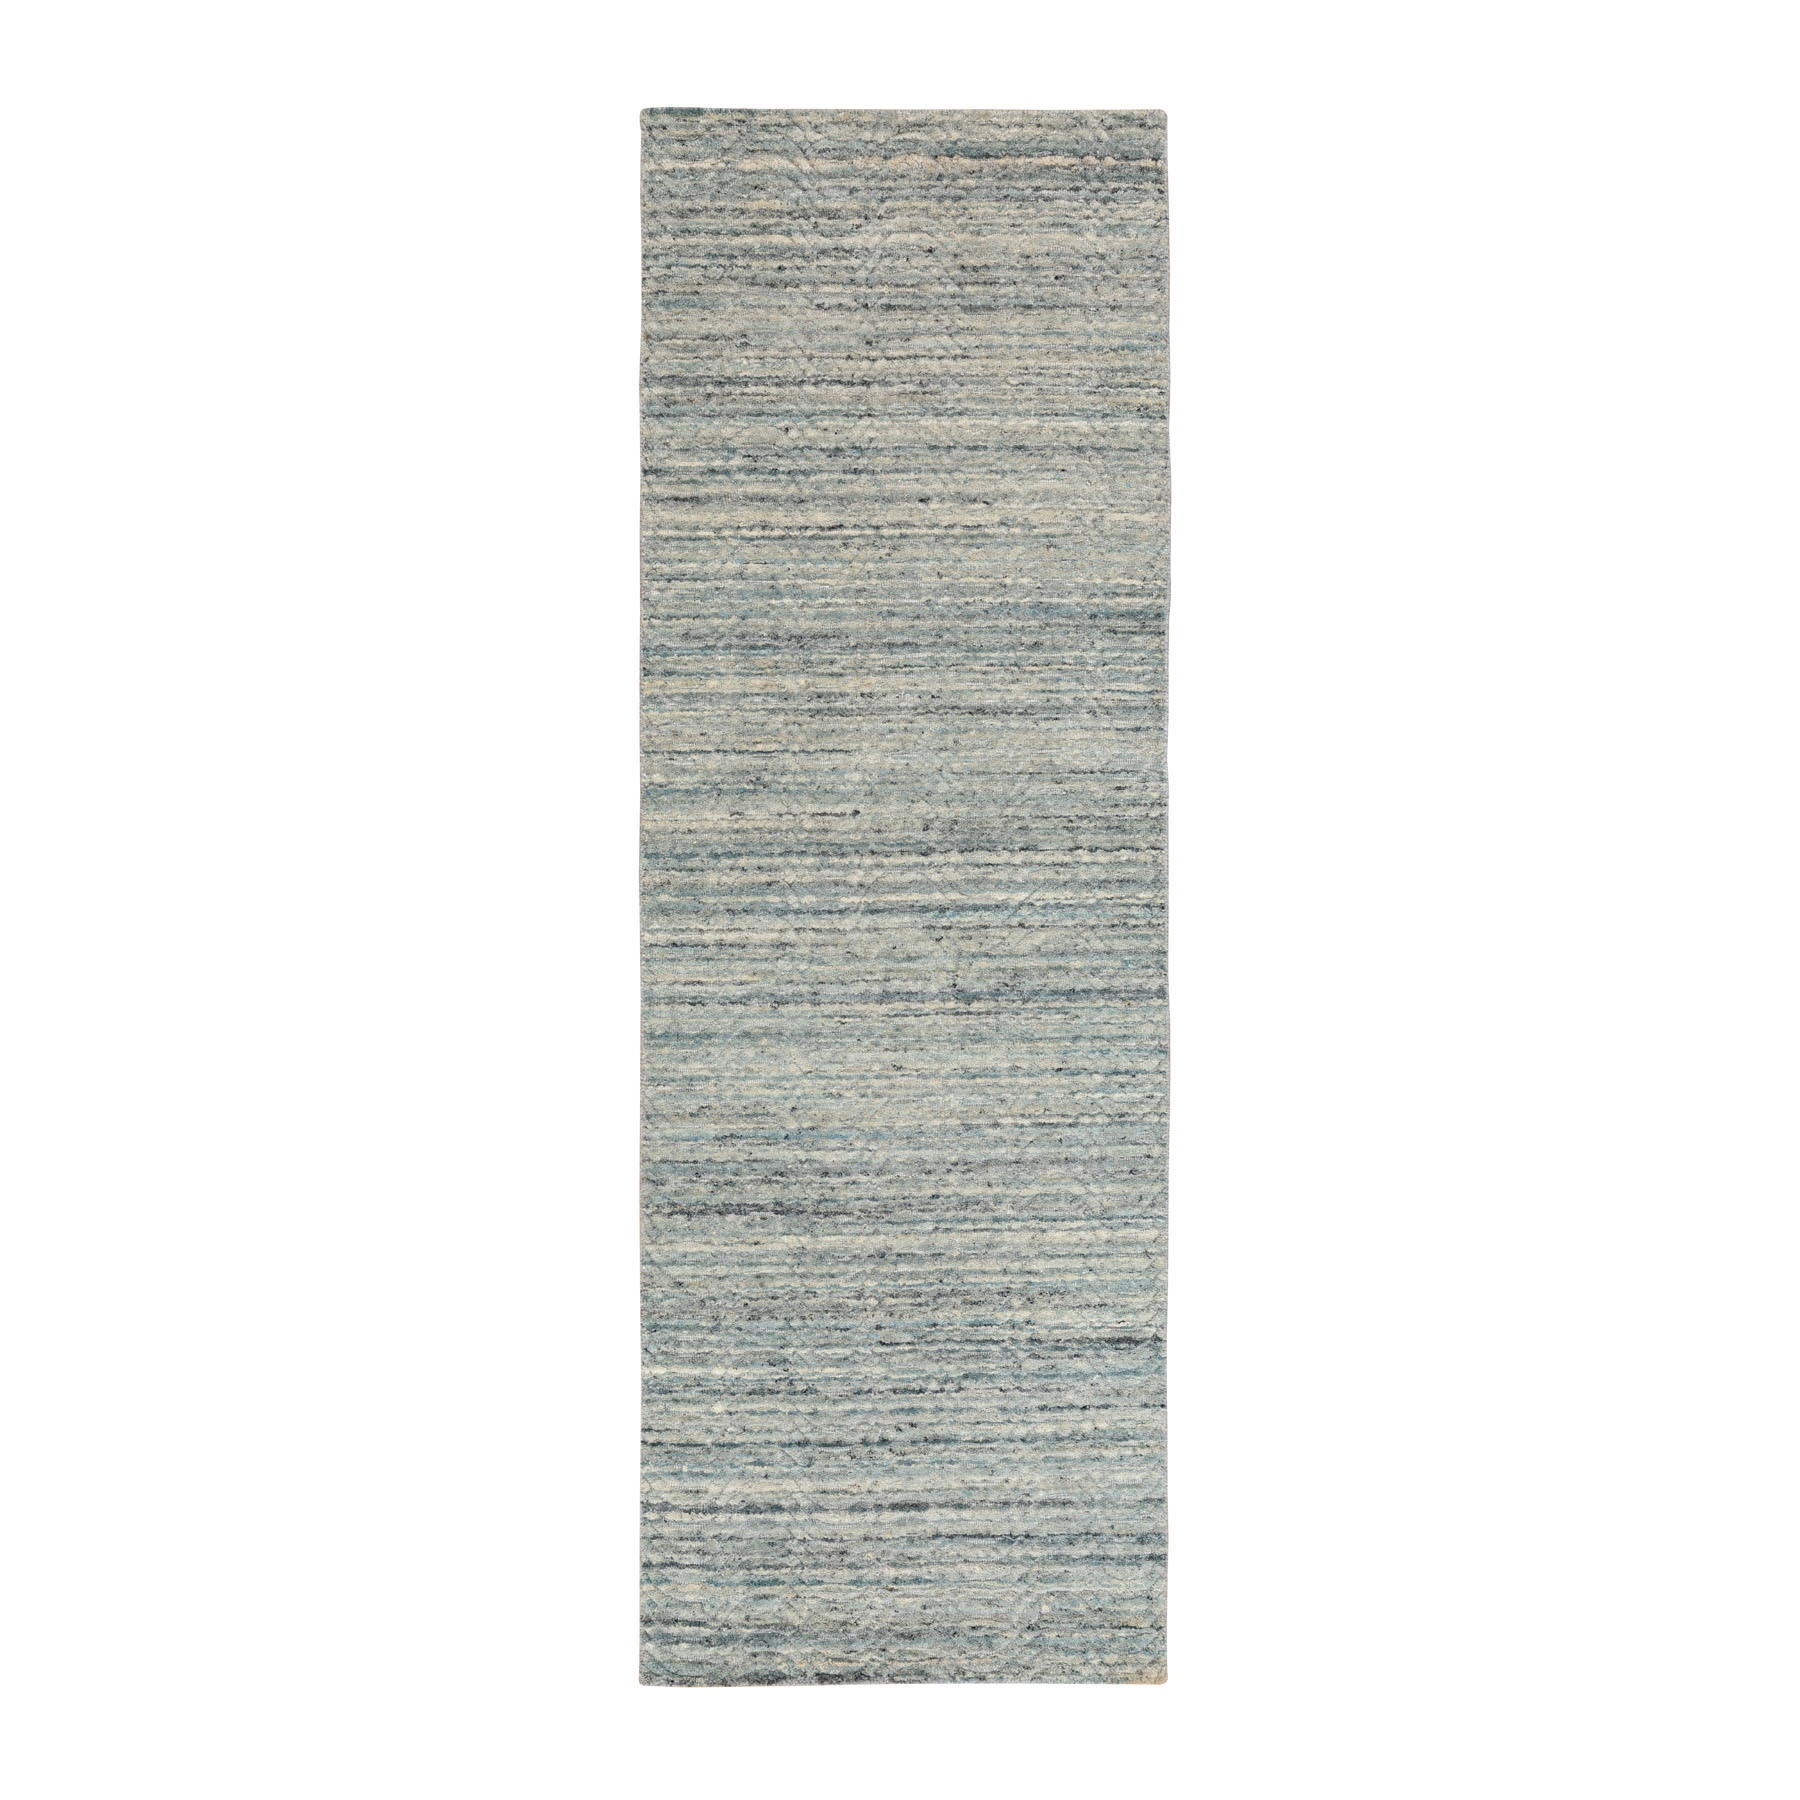 Mid Century Modern Collection Hand Loomed Green Rug No: 01116842